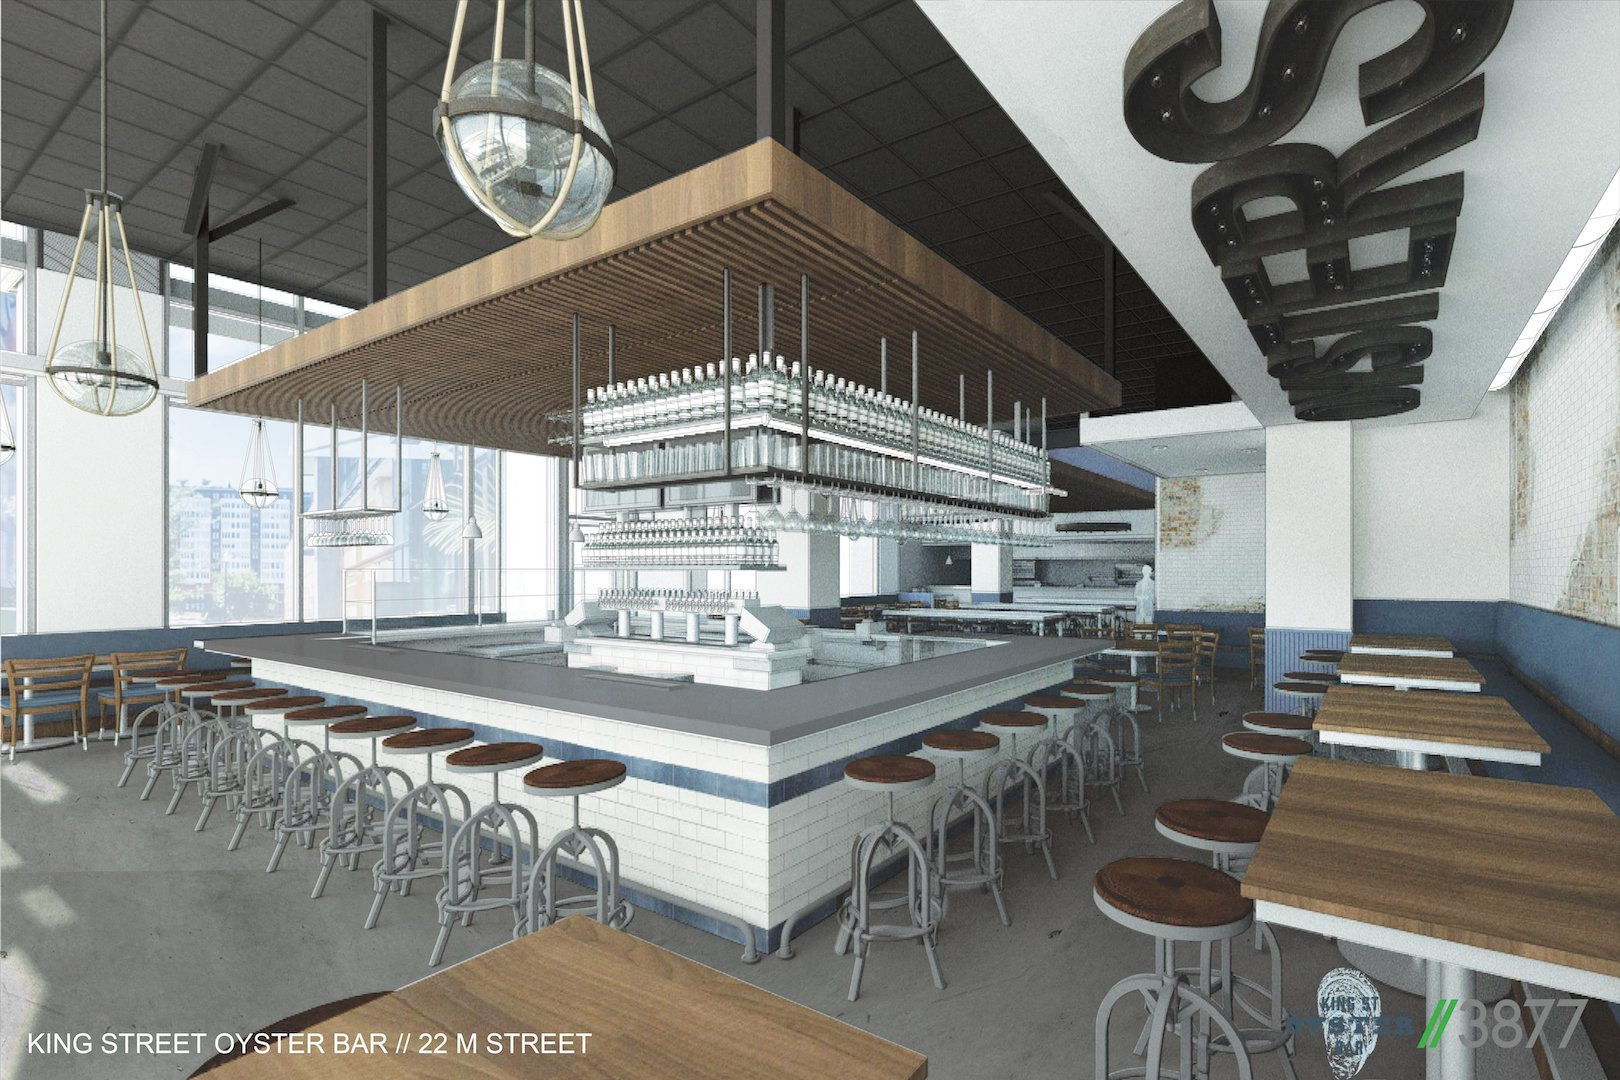 """A rendering of the restaurant with an open bar and giant """"oysters"""" sign. Courtesy of King Street Oyster Bar."""